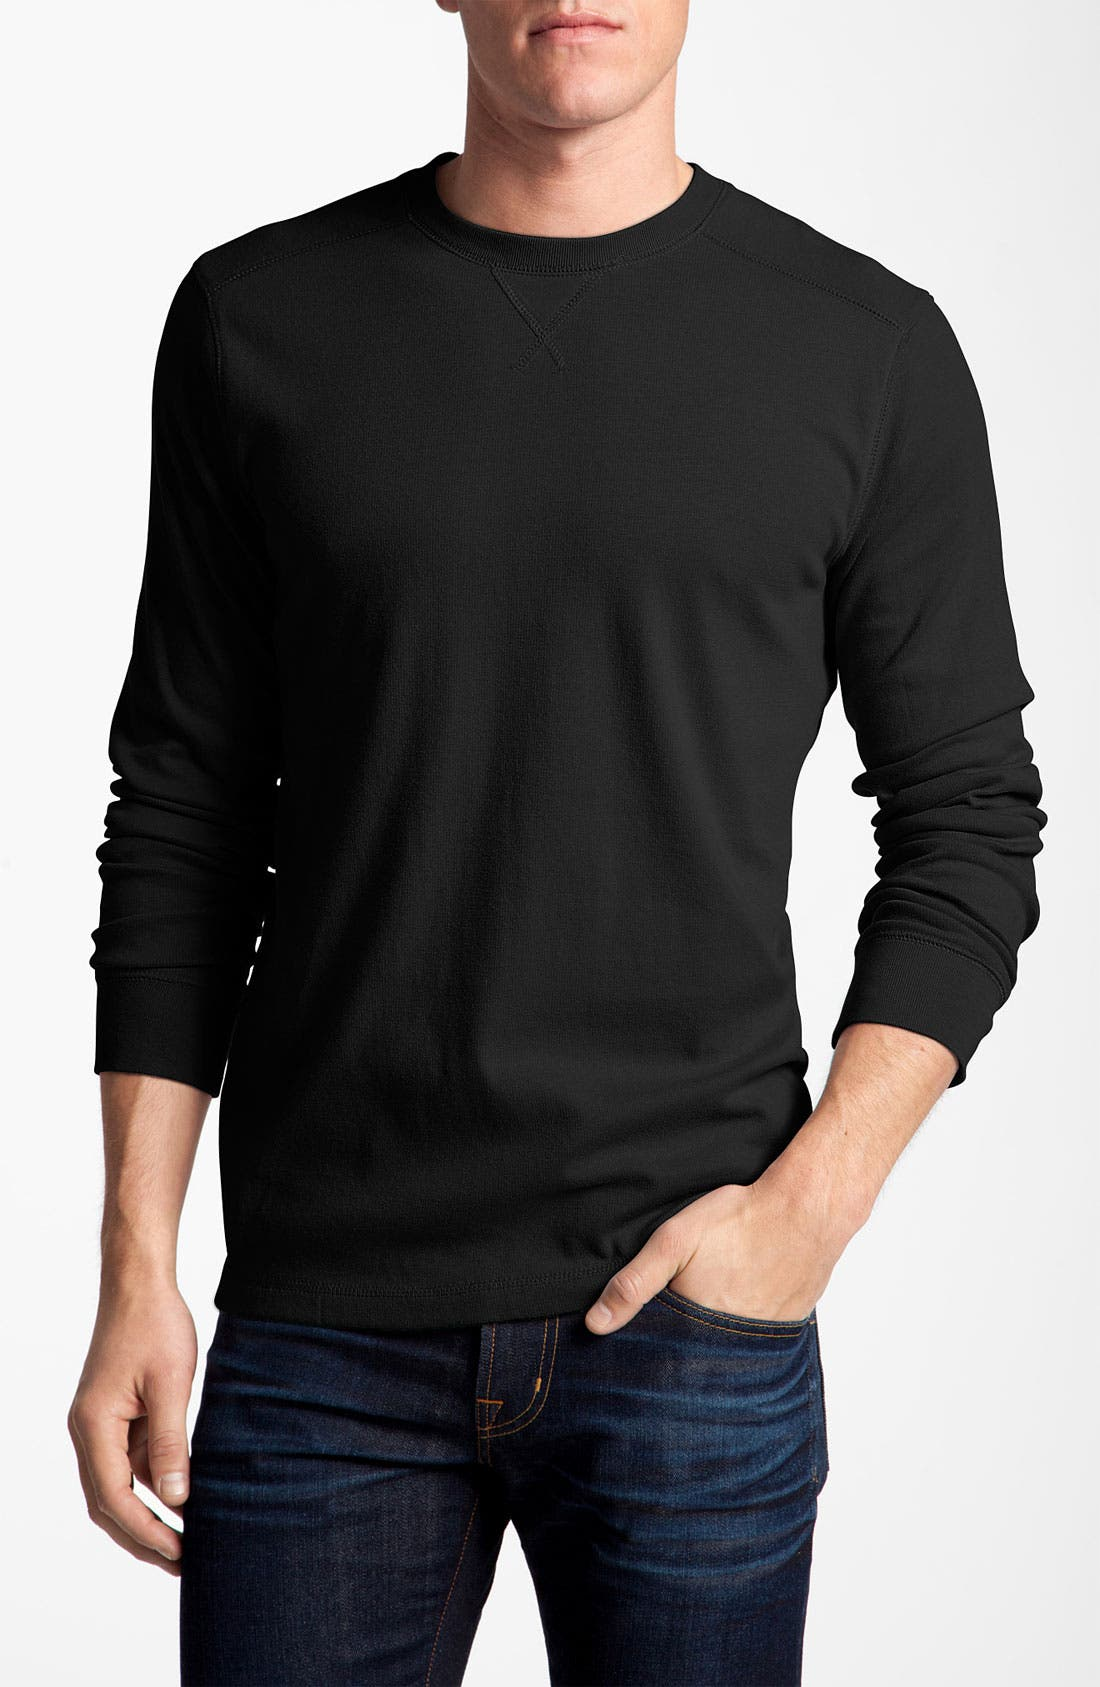 Alternate Image 1 Selected - Quiksilver Long Sleeve Knit T-Shirt